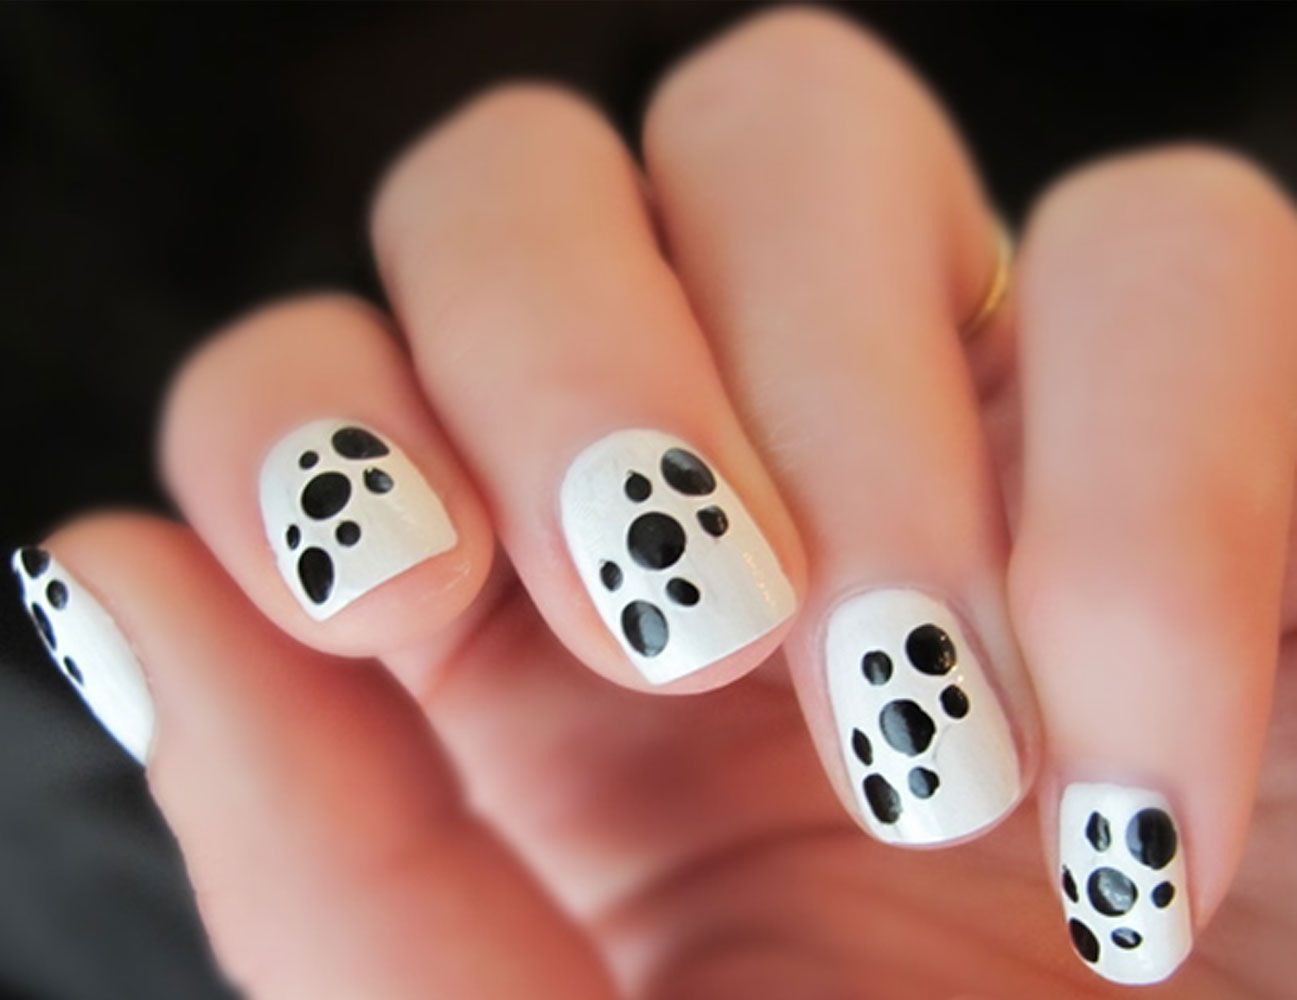 White base with black dots in a pattern so cute it seems like it